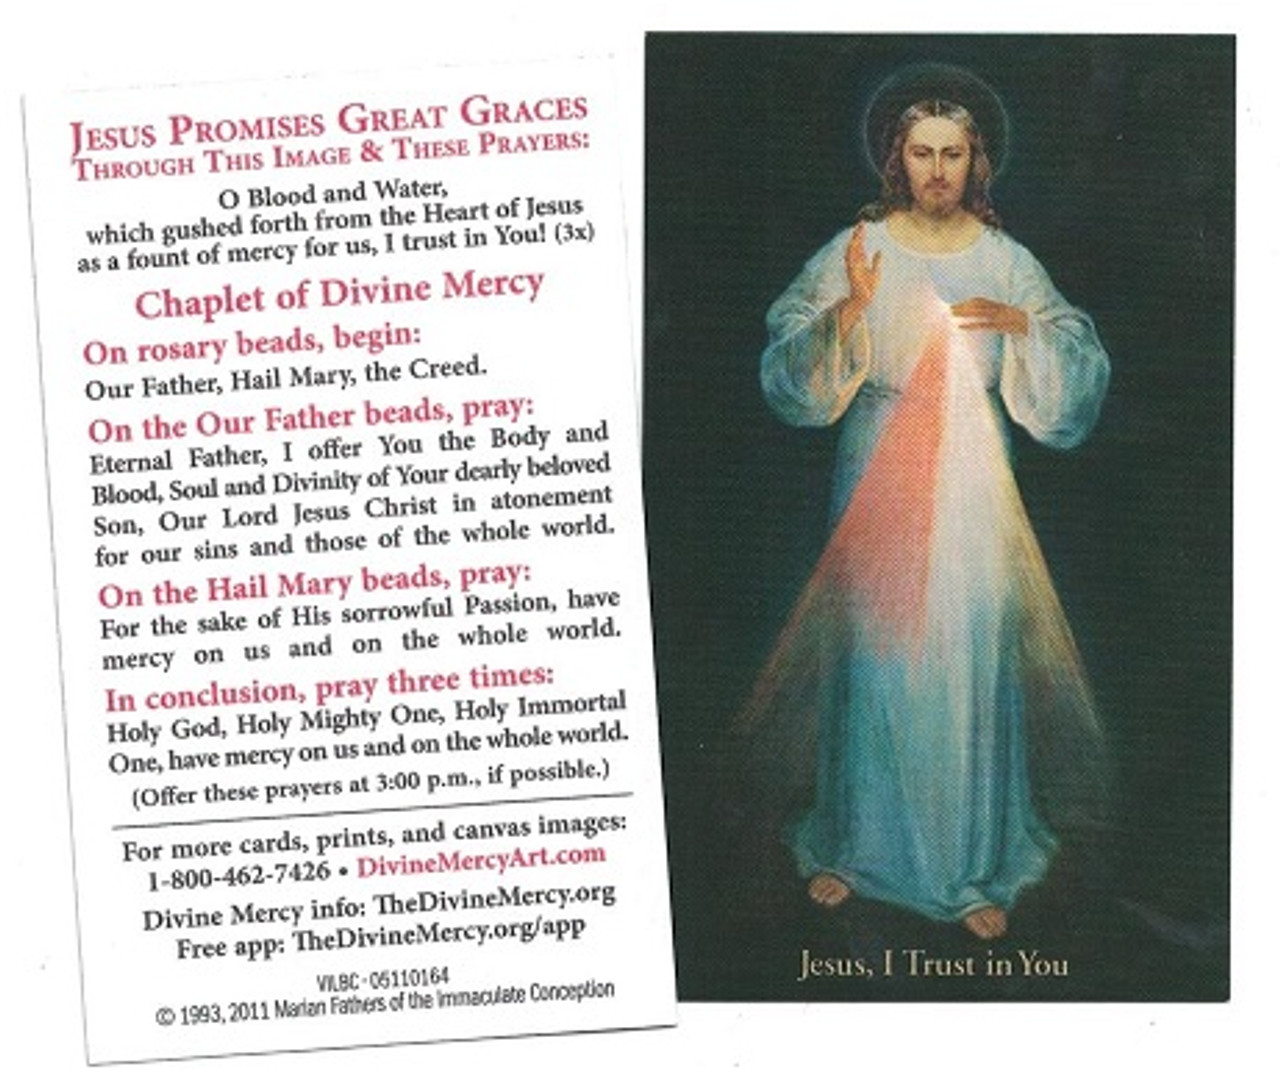 Inexpensive Divine Mercy Prayer Cards with Chaplet of Divine Mercy -- Black backnground, original image